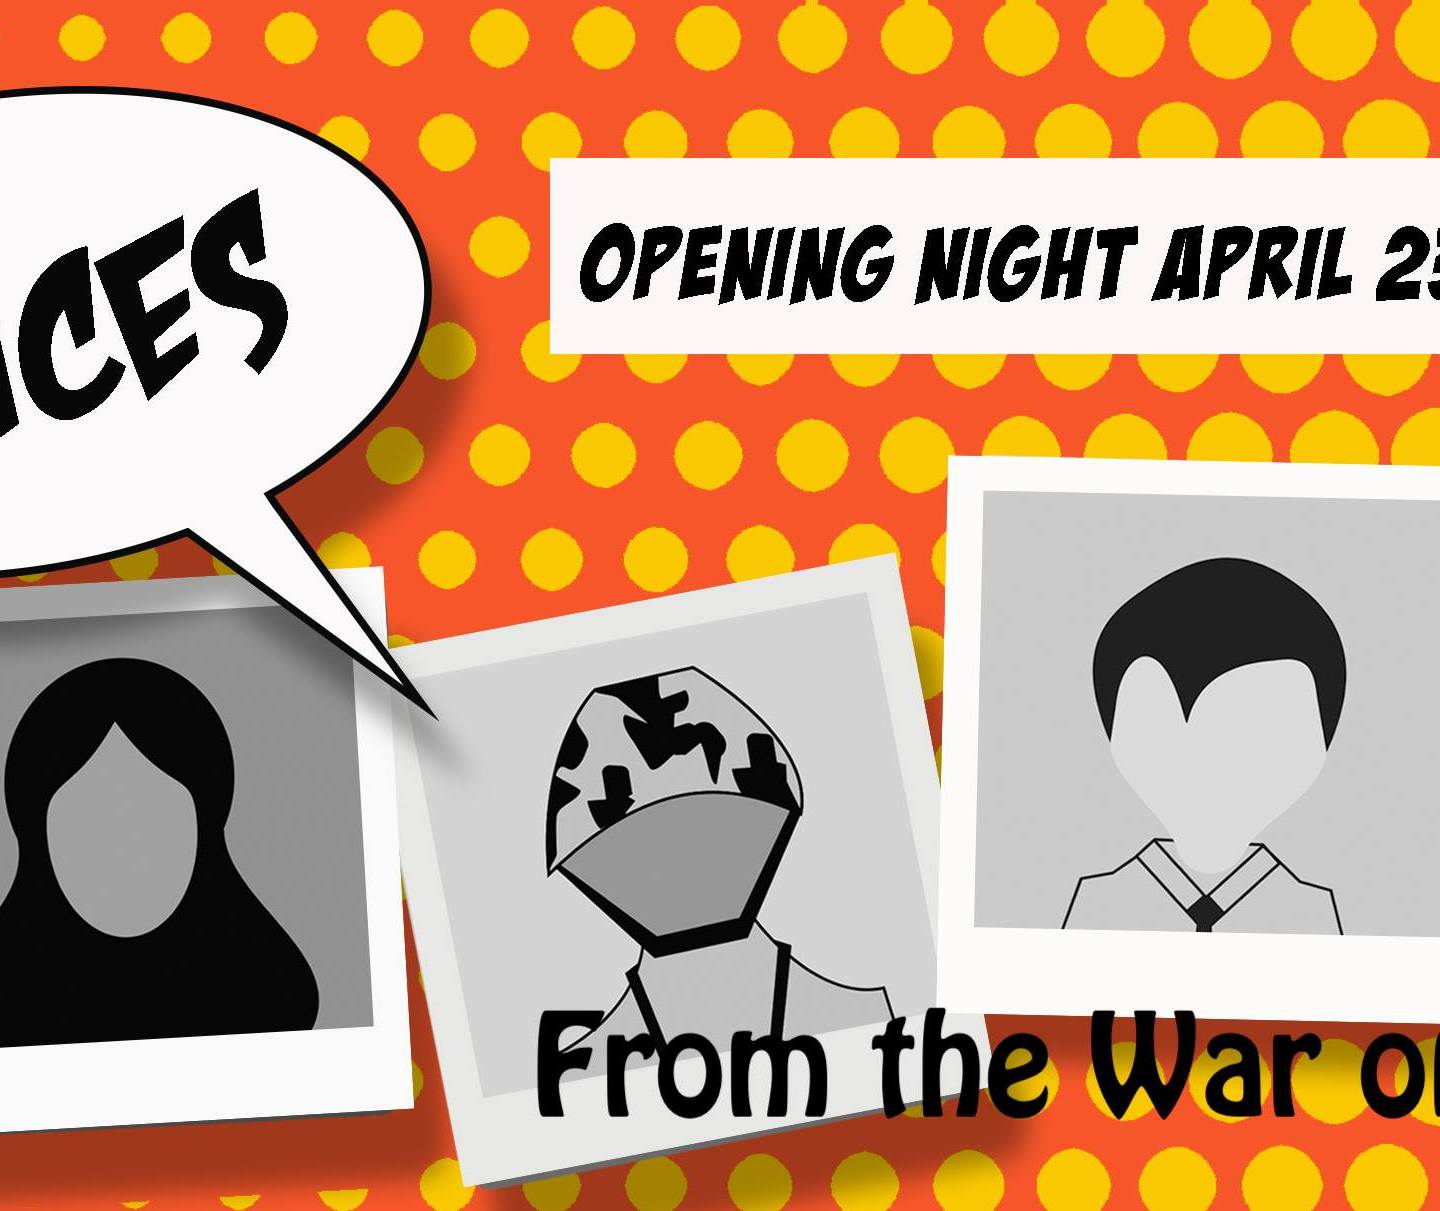 Voices from the War on Terror: A Sensory Exhibit